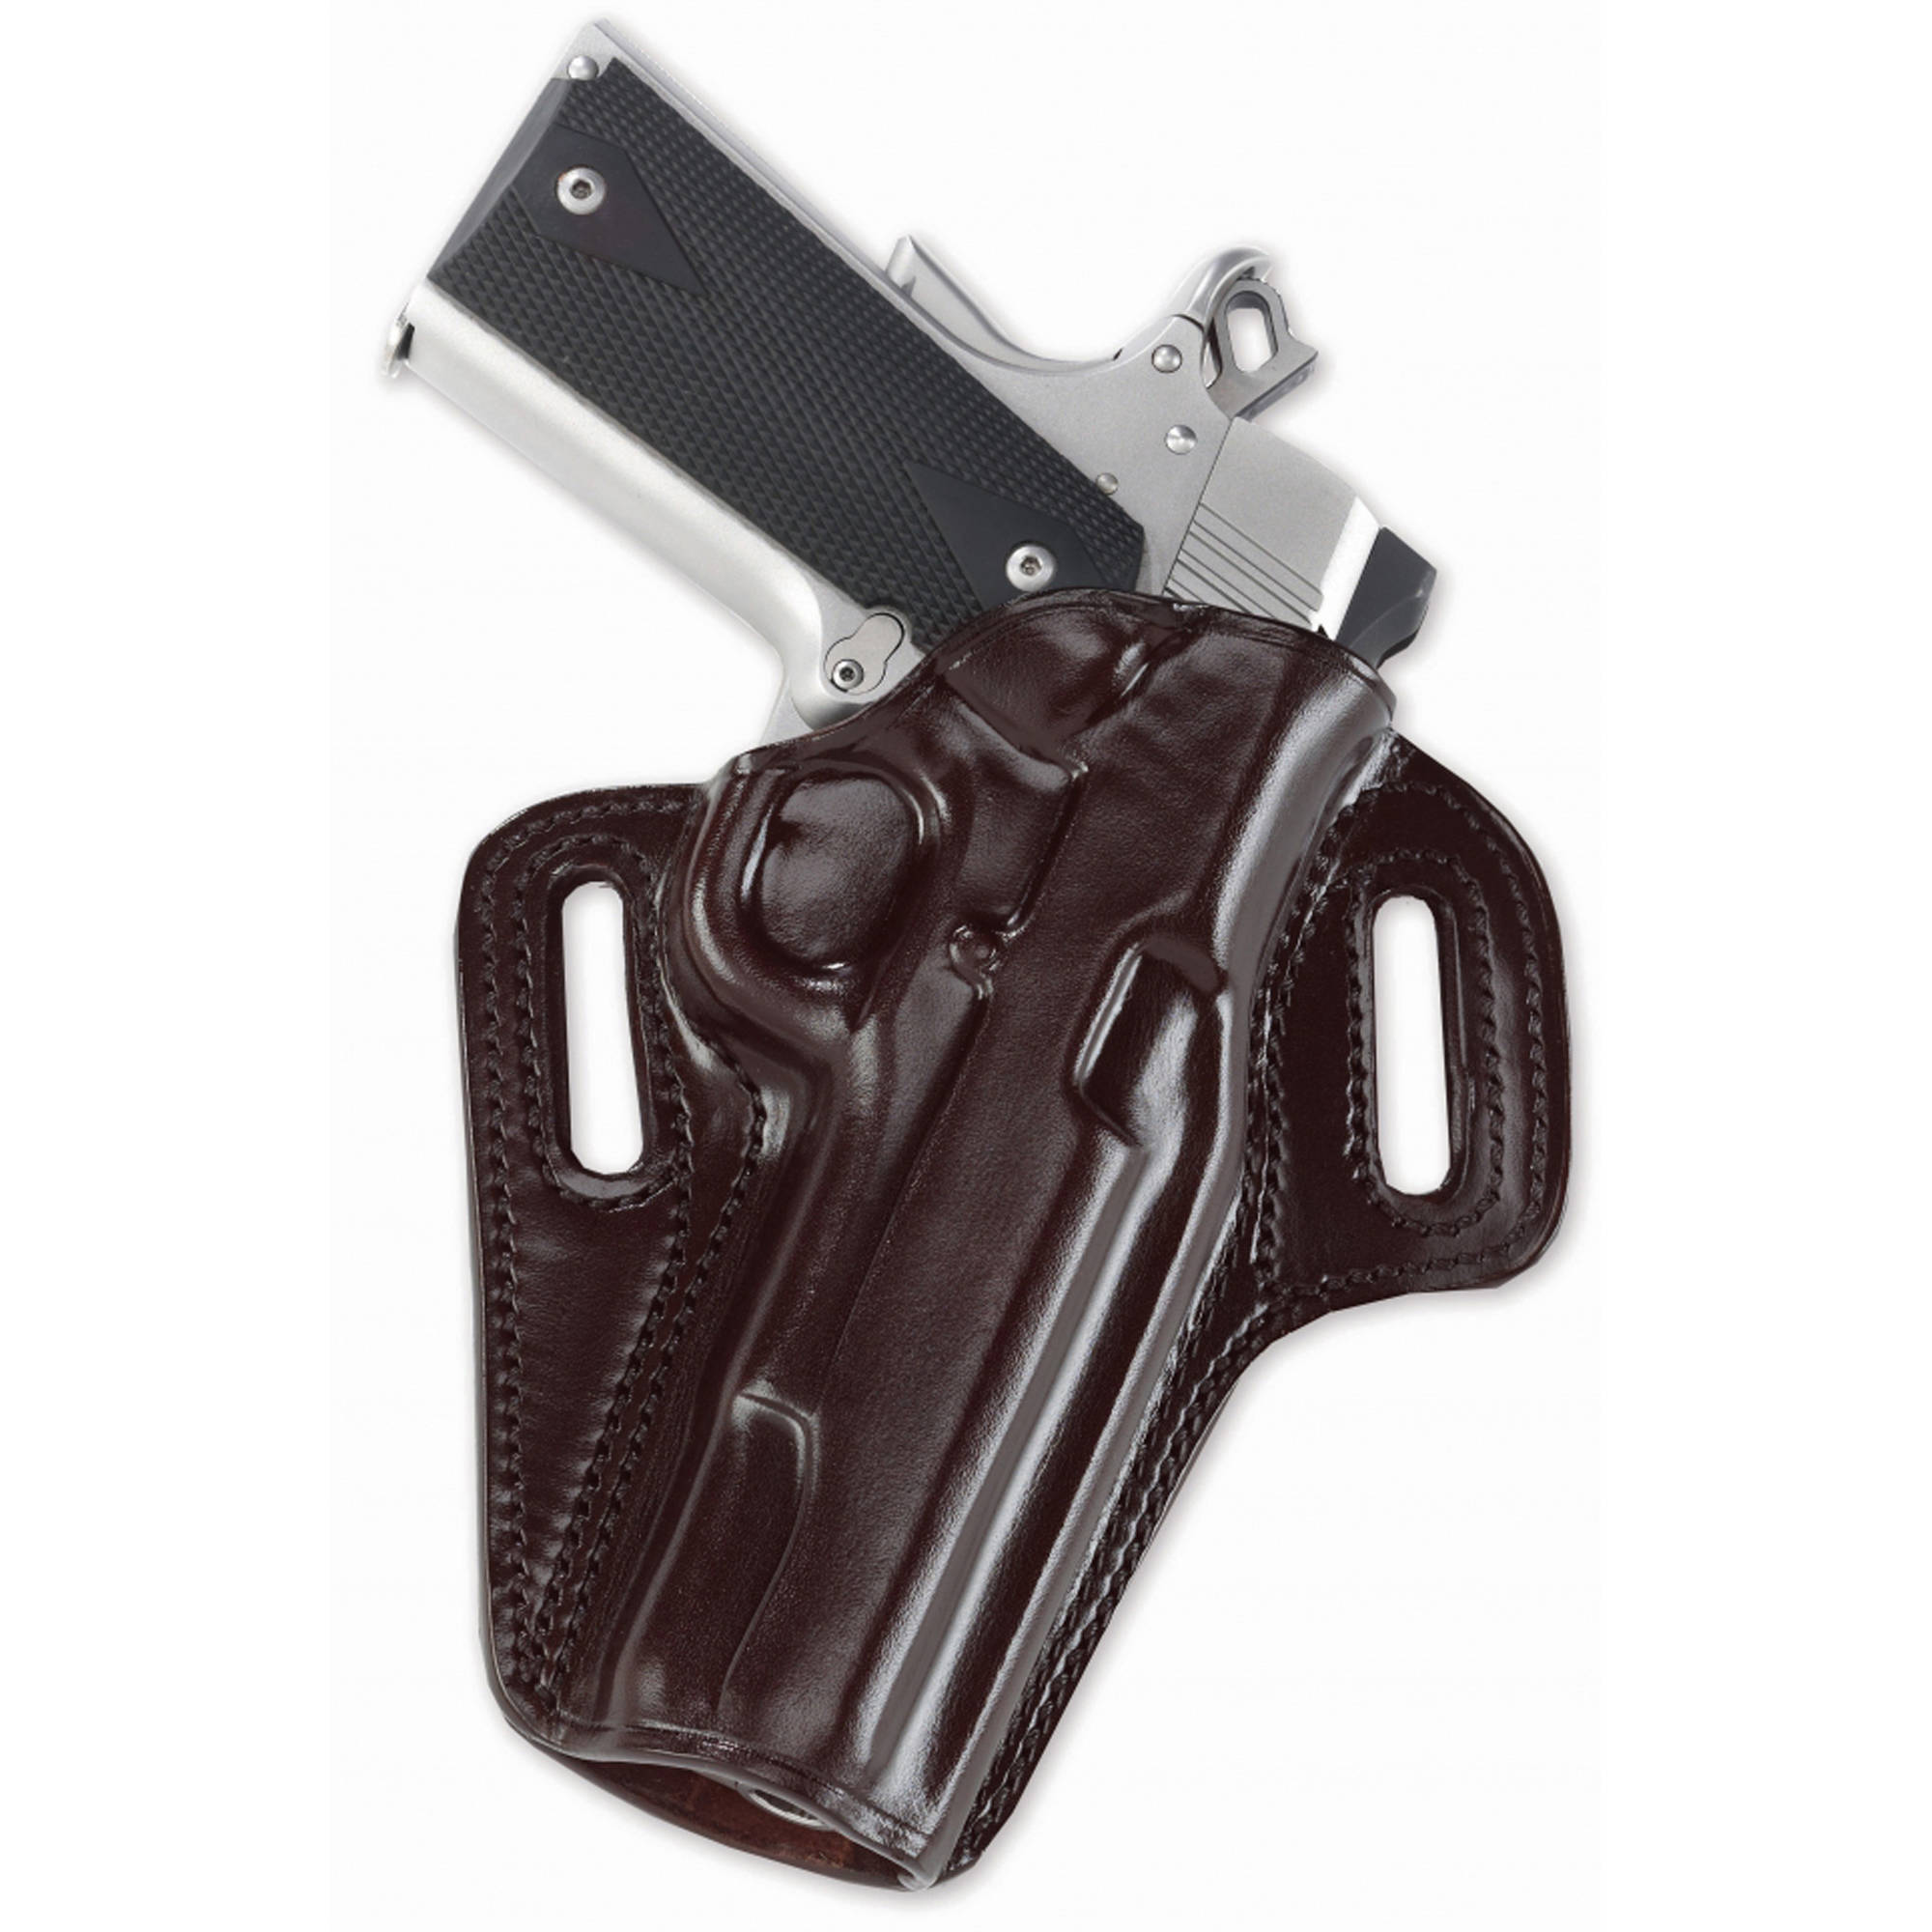 "Galco Concealable Belt Holster, Fits 1911 with 3.5"" Barrel, Right Hand, Black Leather by Galco"